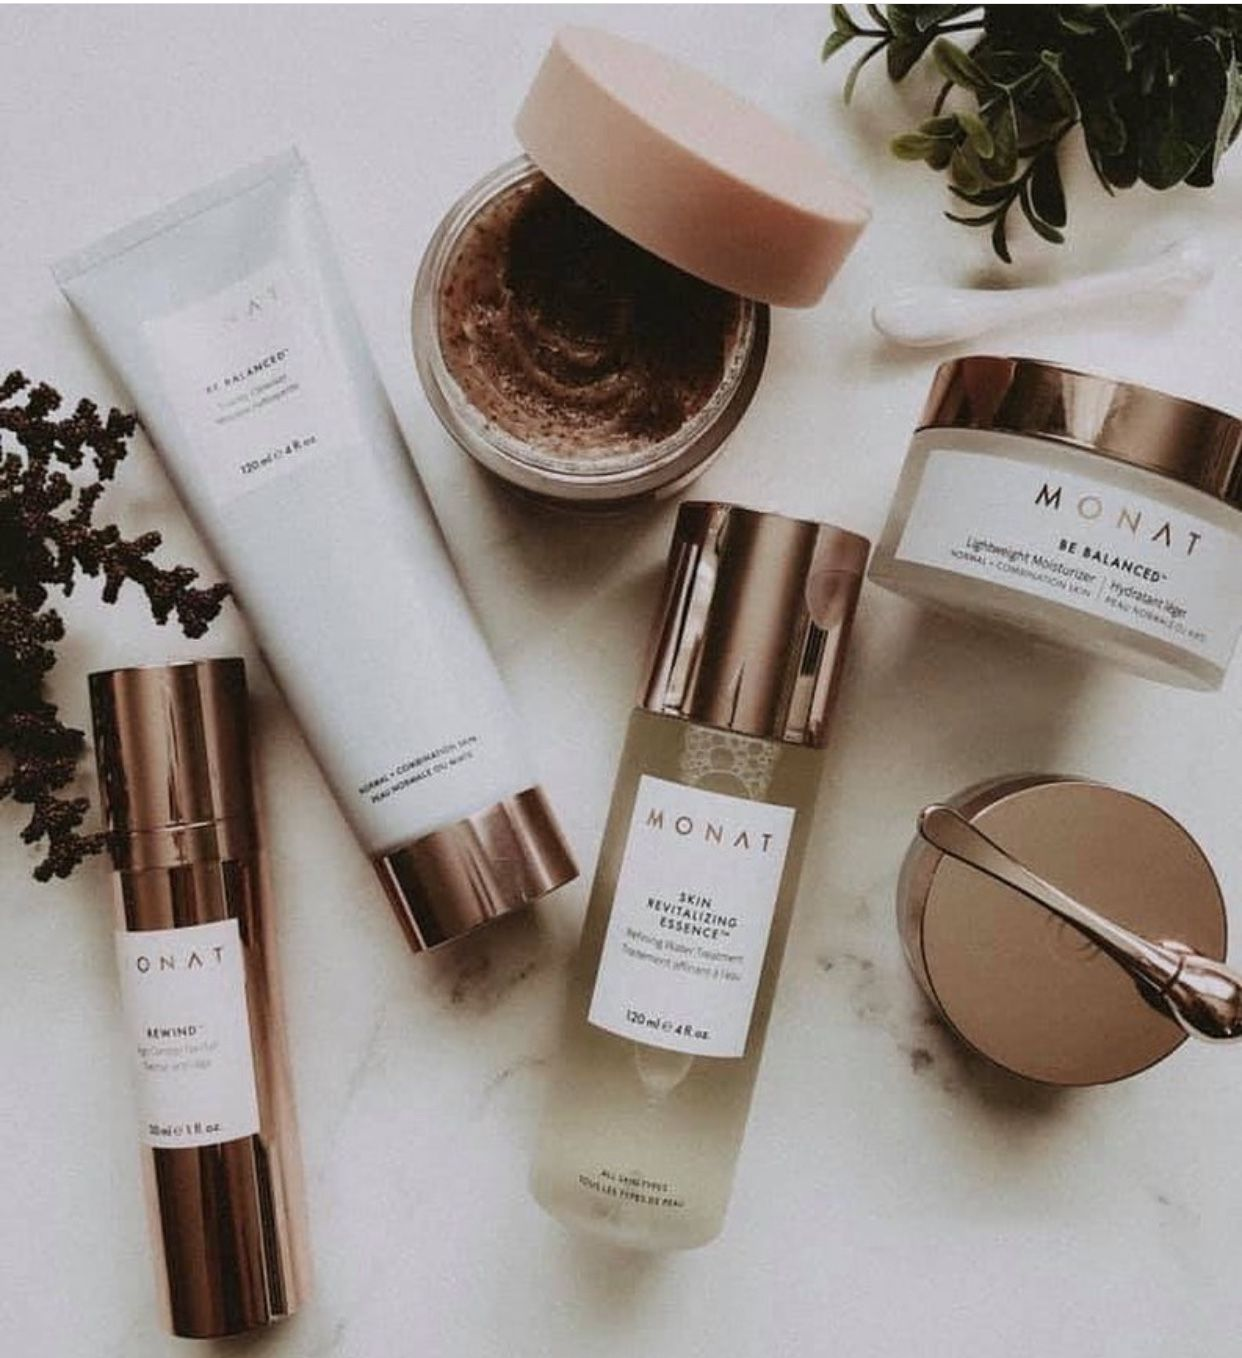 This skincare line will transform your lines, wrinkles and